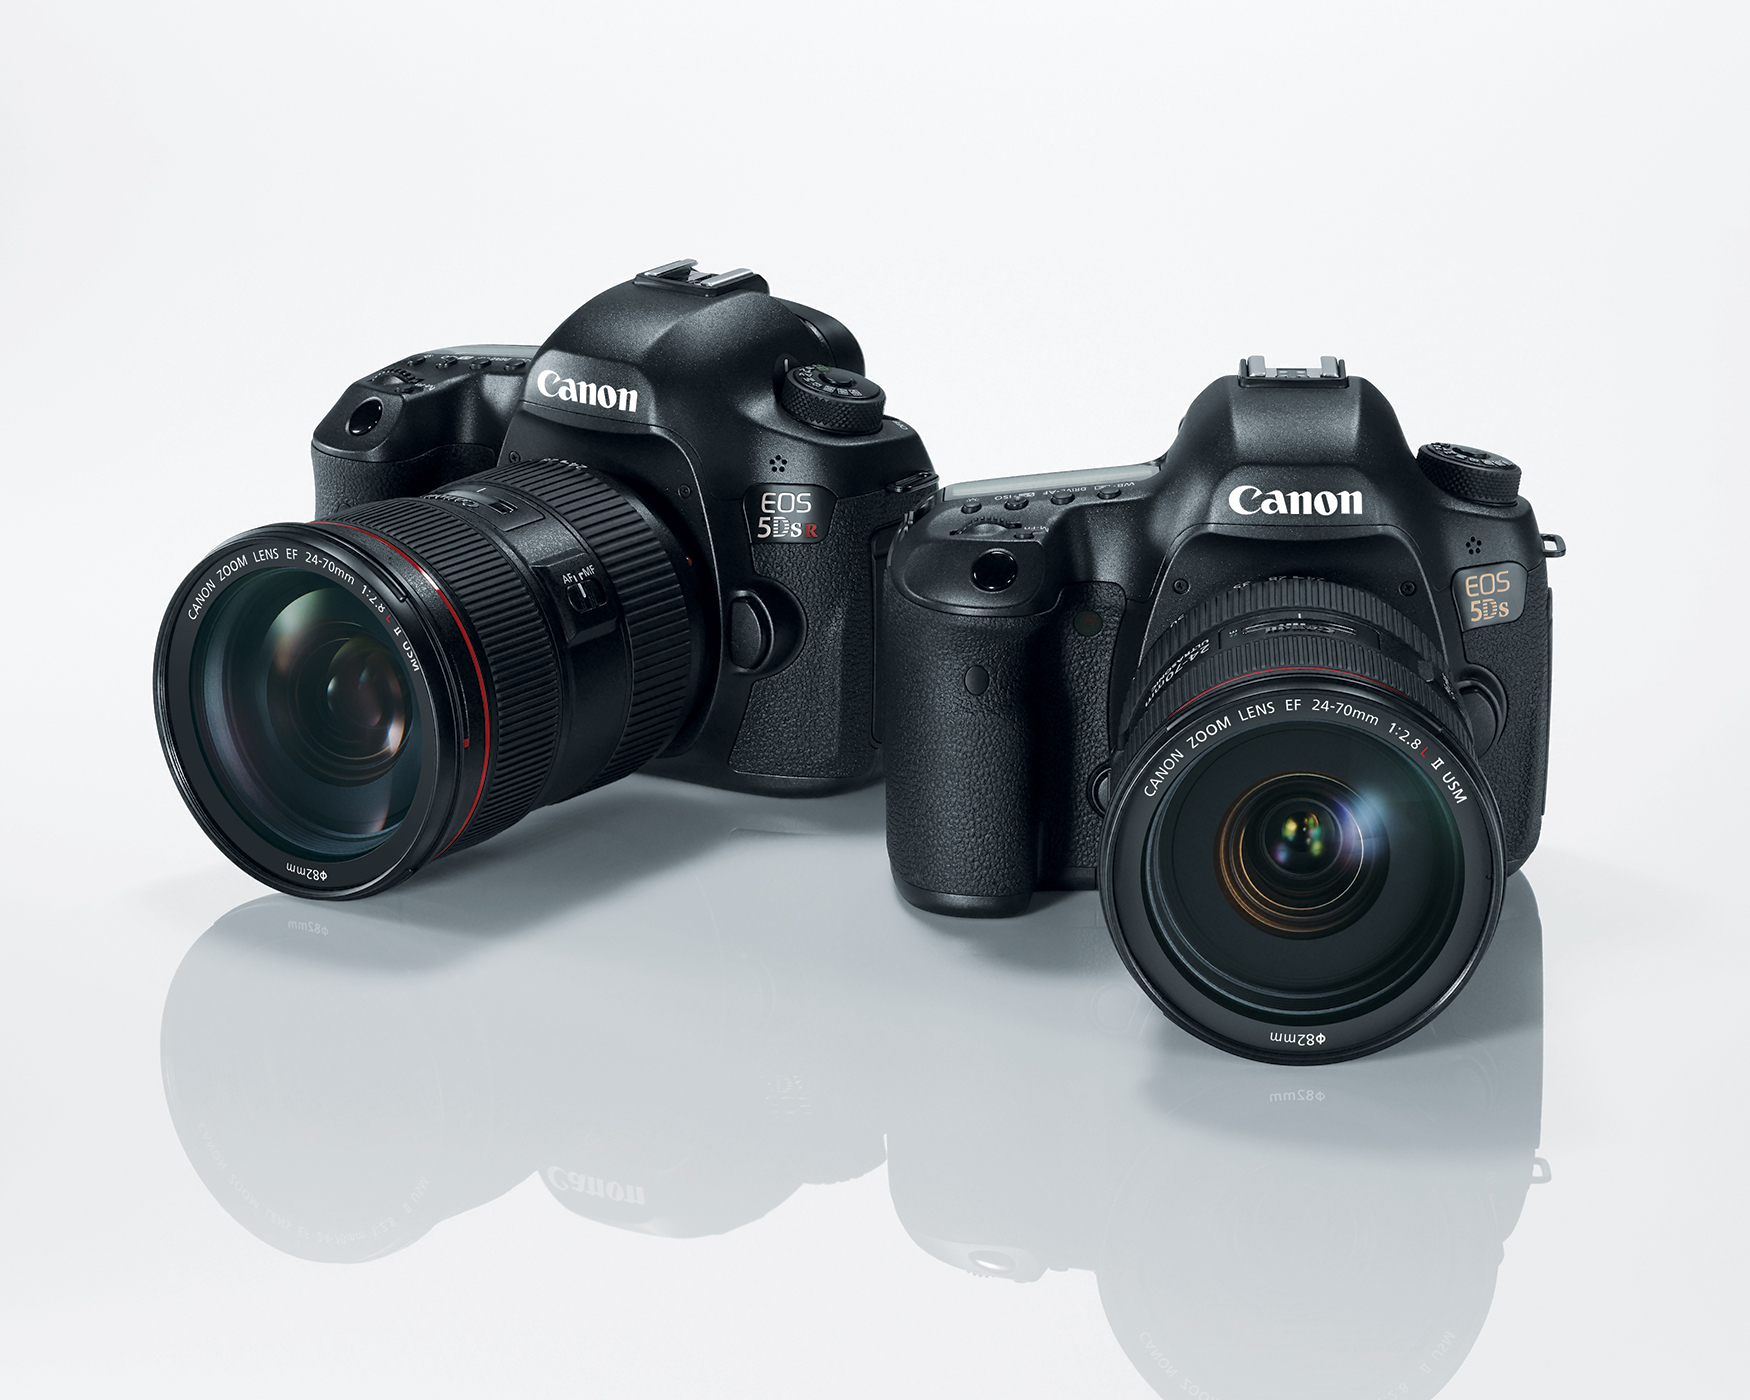 Canon Breaks 50 Megapixel Barrier With A Pair of New EOS 5D DSLRS ...